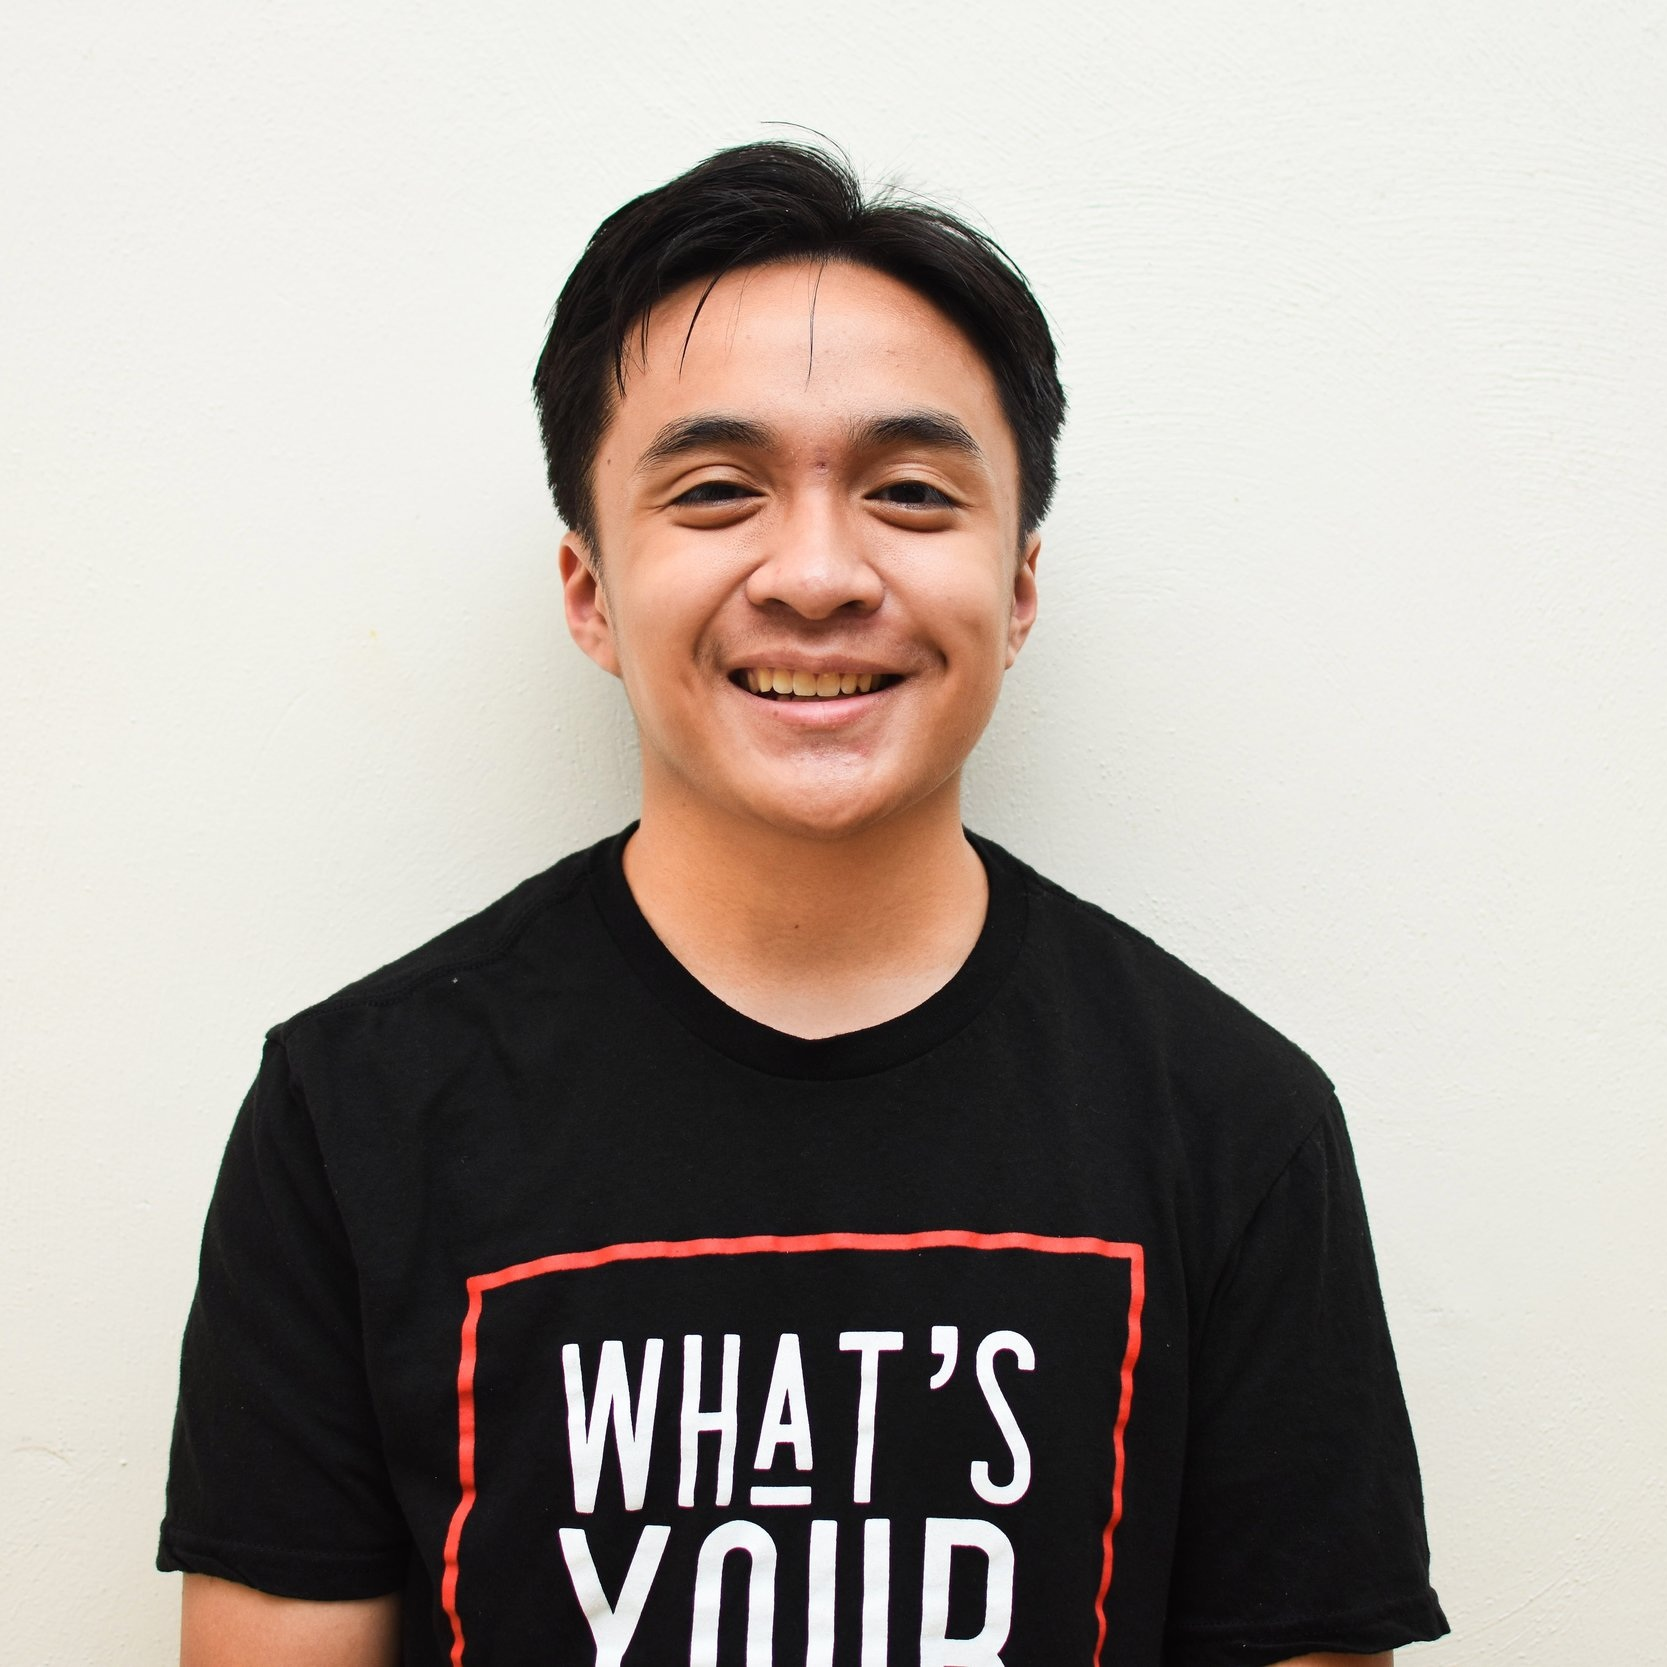 KAI ALFONSO - performs with SCAPA and loves to express his culture.